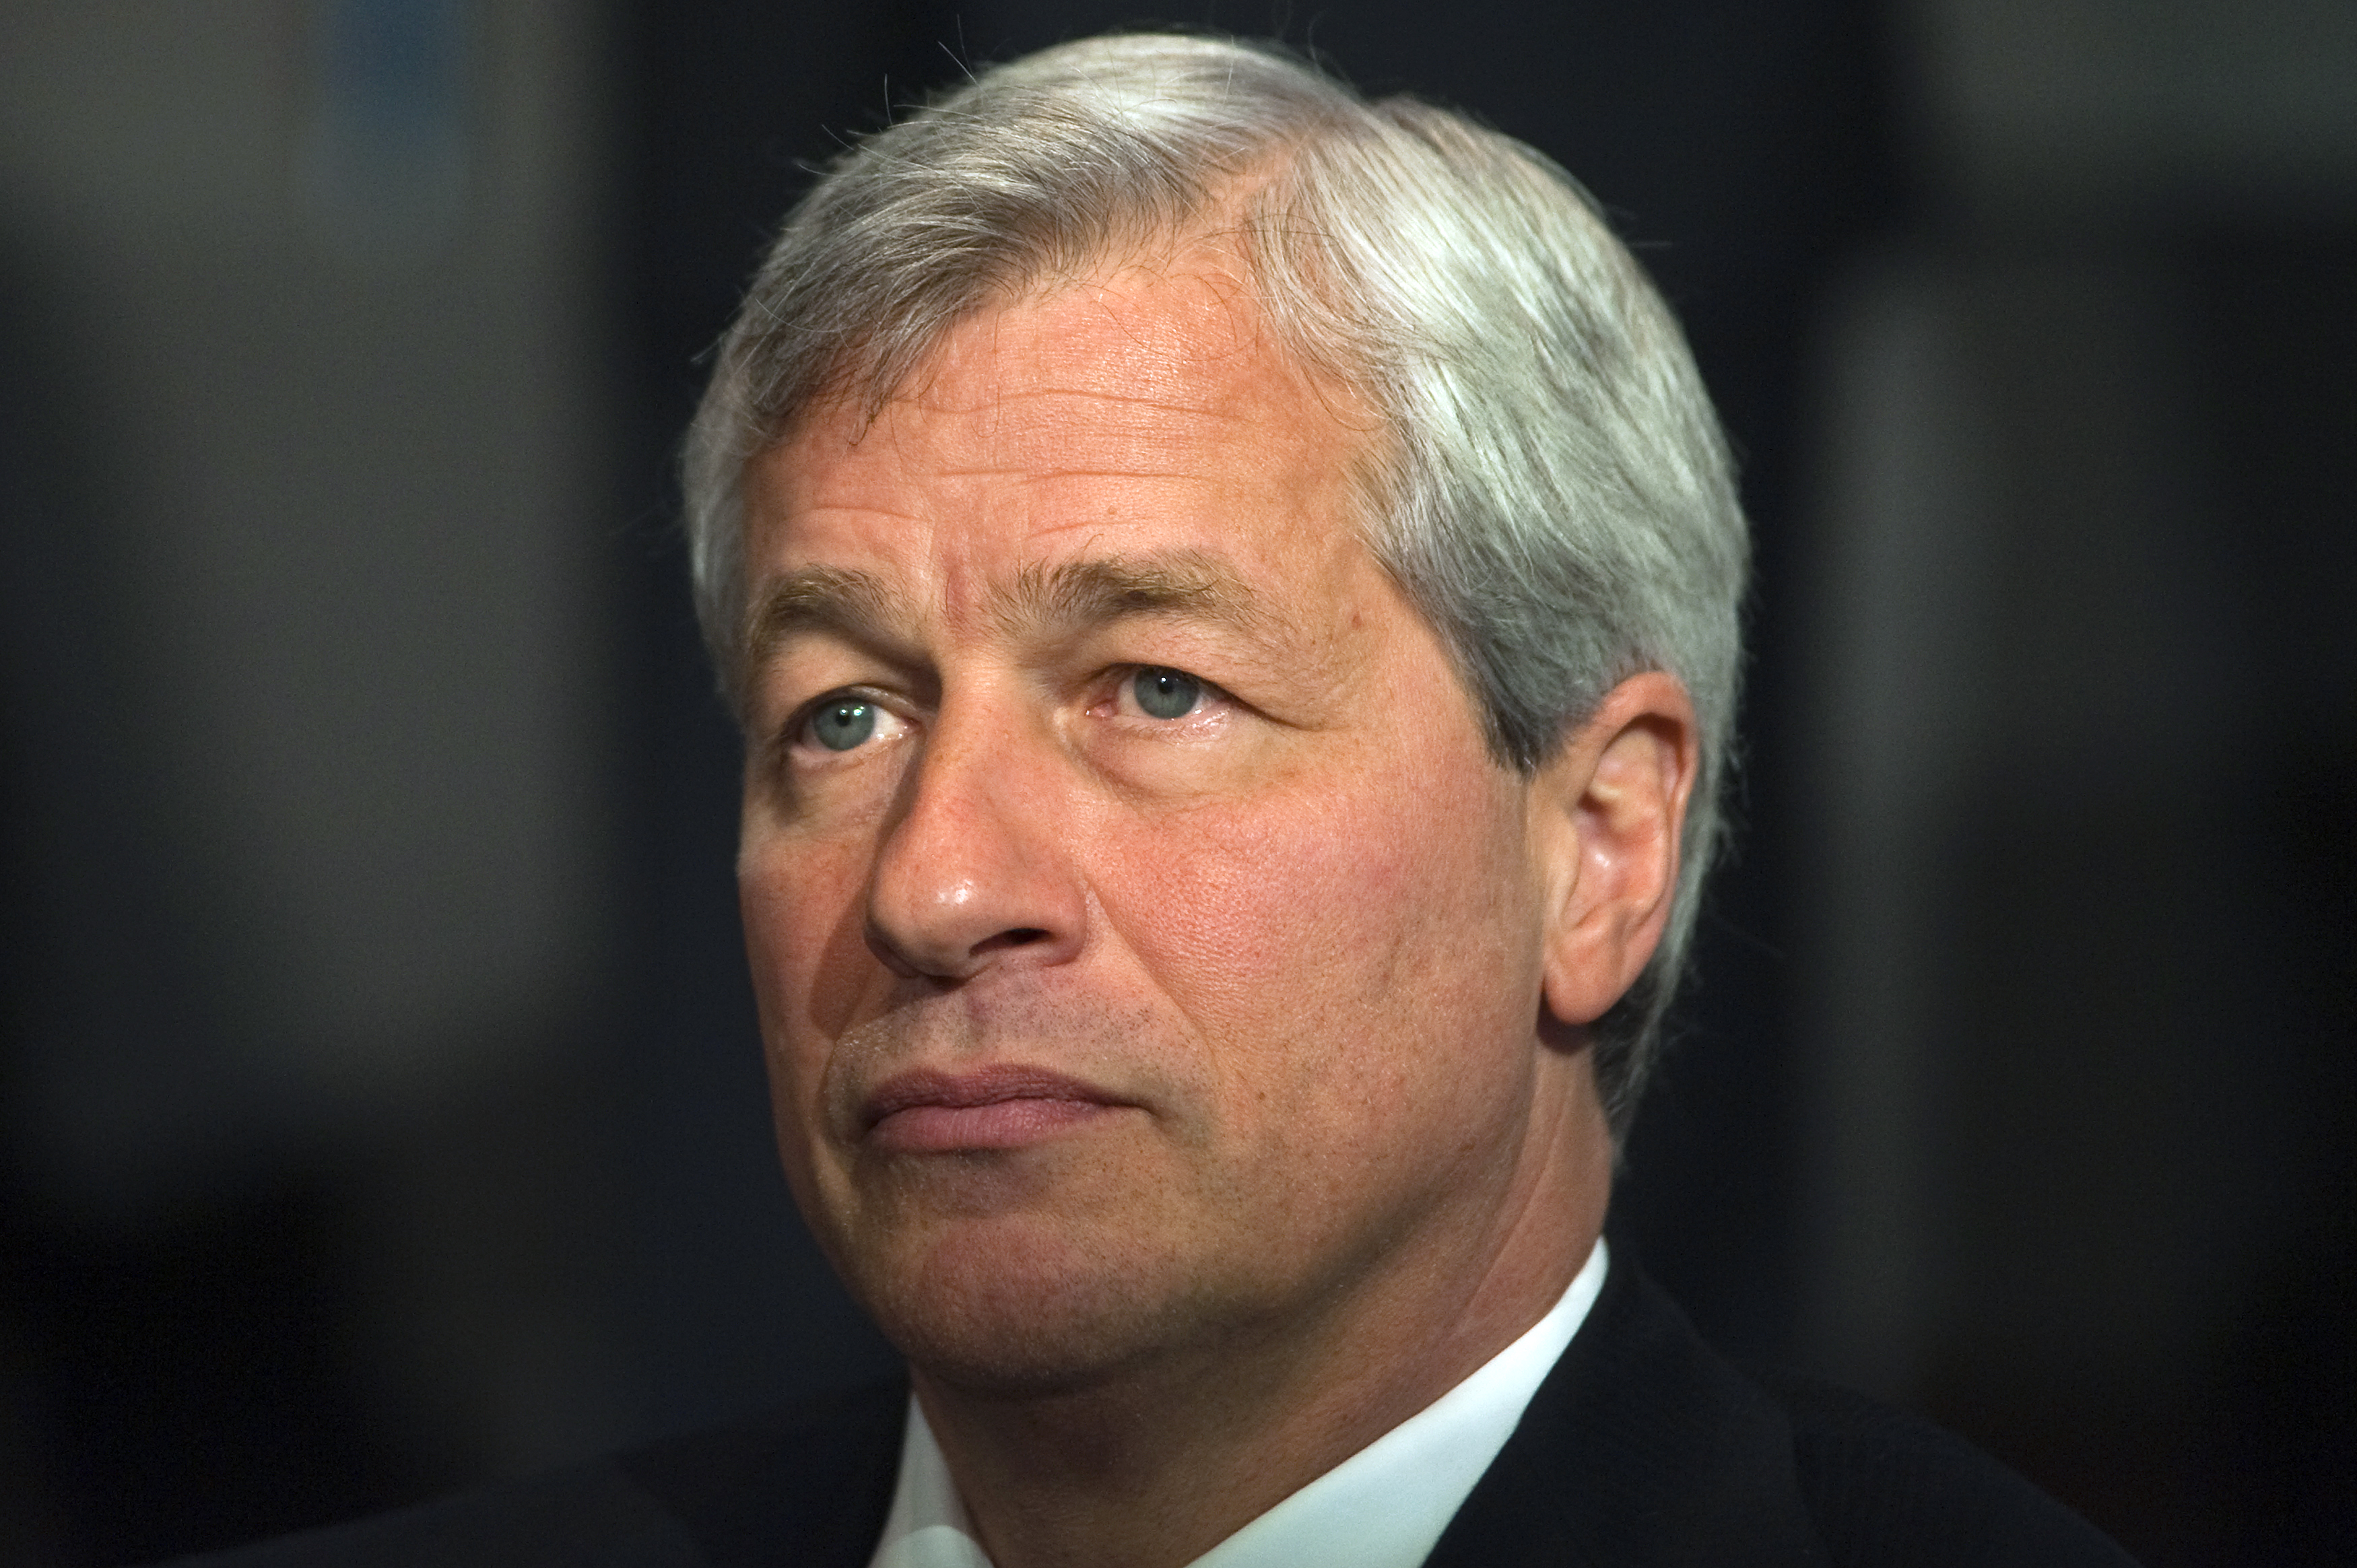 Jamie Dimon, chairman and chief executive of JP Morgan Chase and Co. ©REUTERS/Keith Bedford